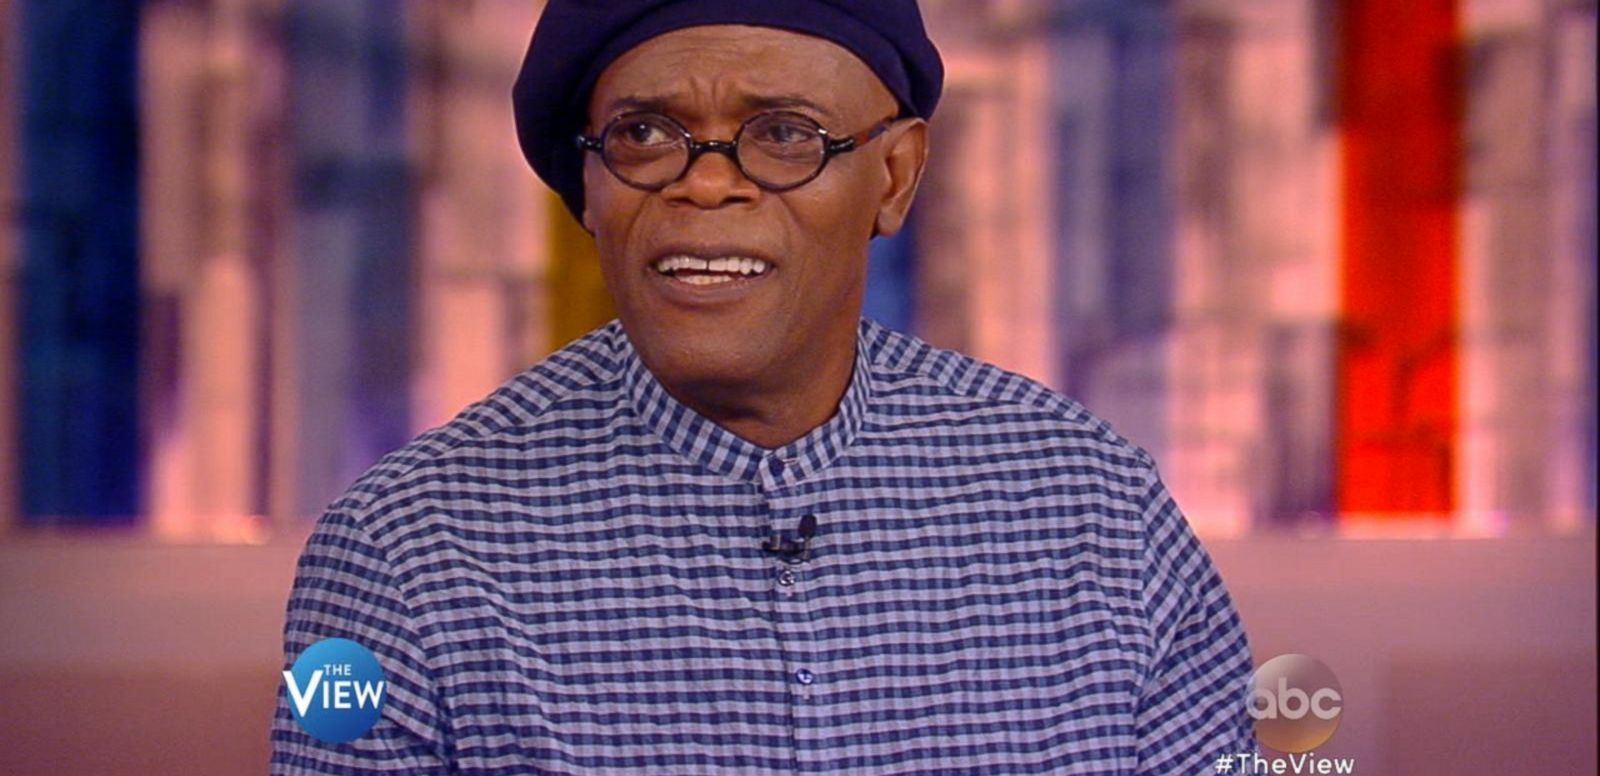 VIDEO: Donald Trump and Samuel L. Jackson Square Off on Twitter